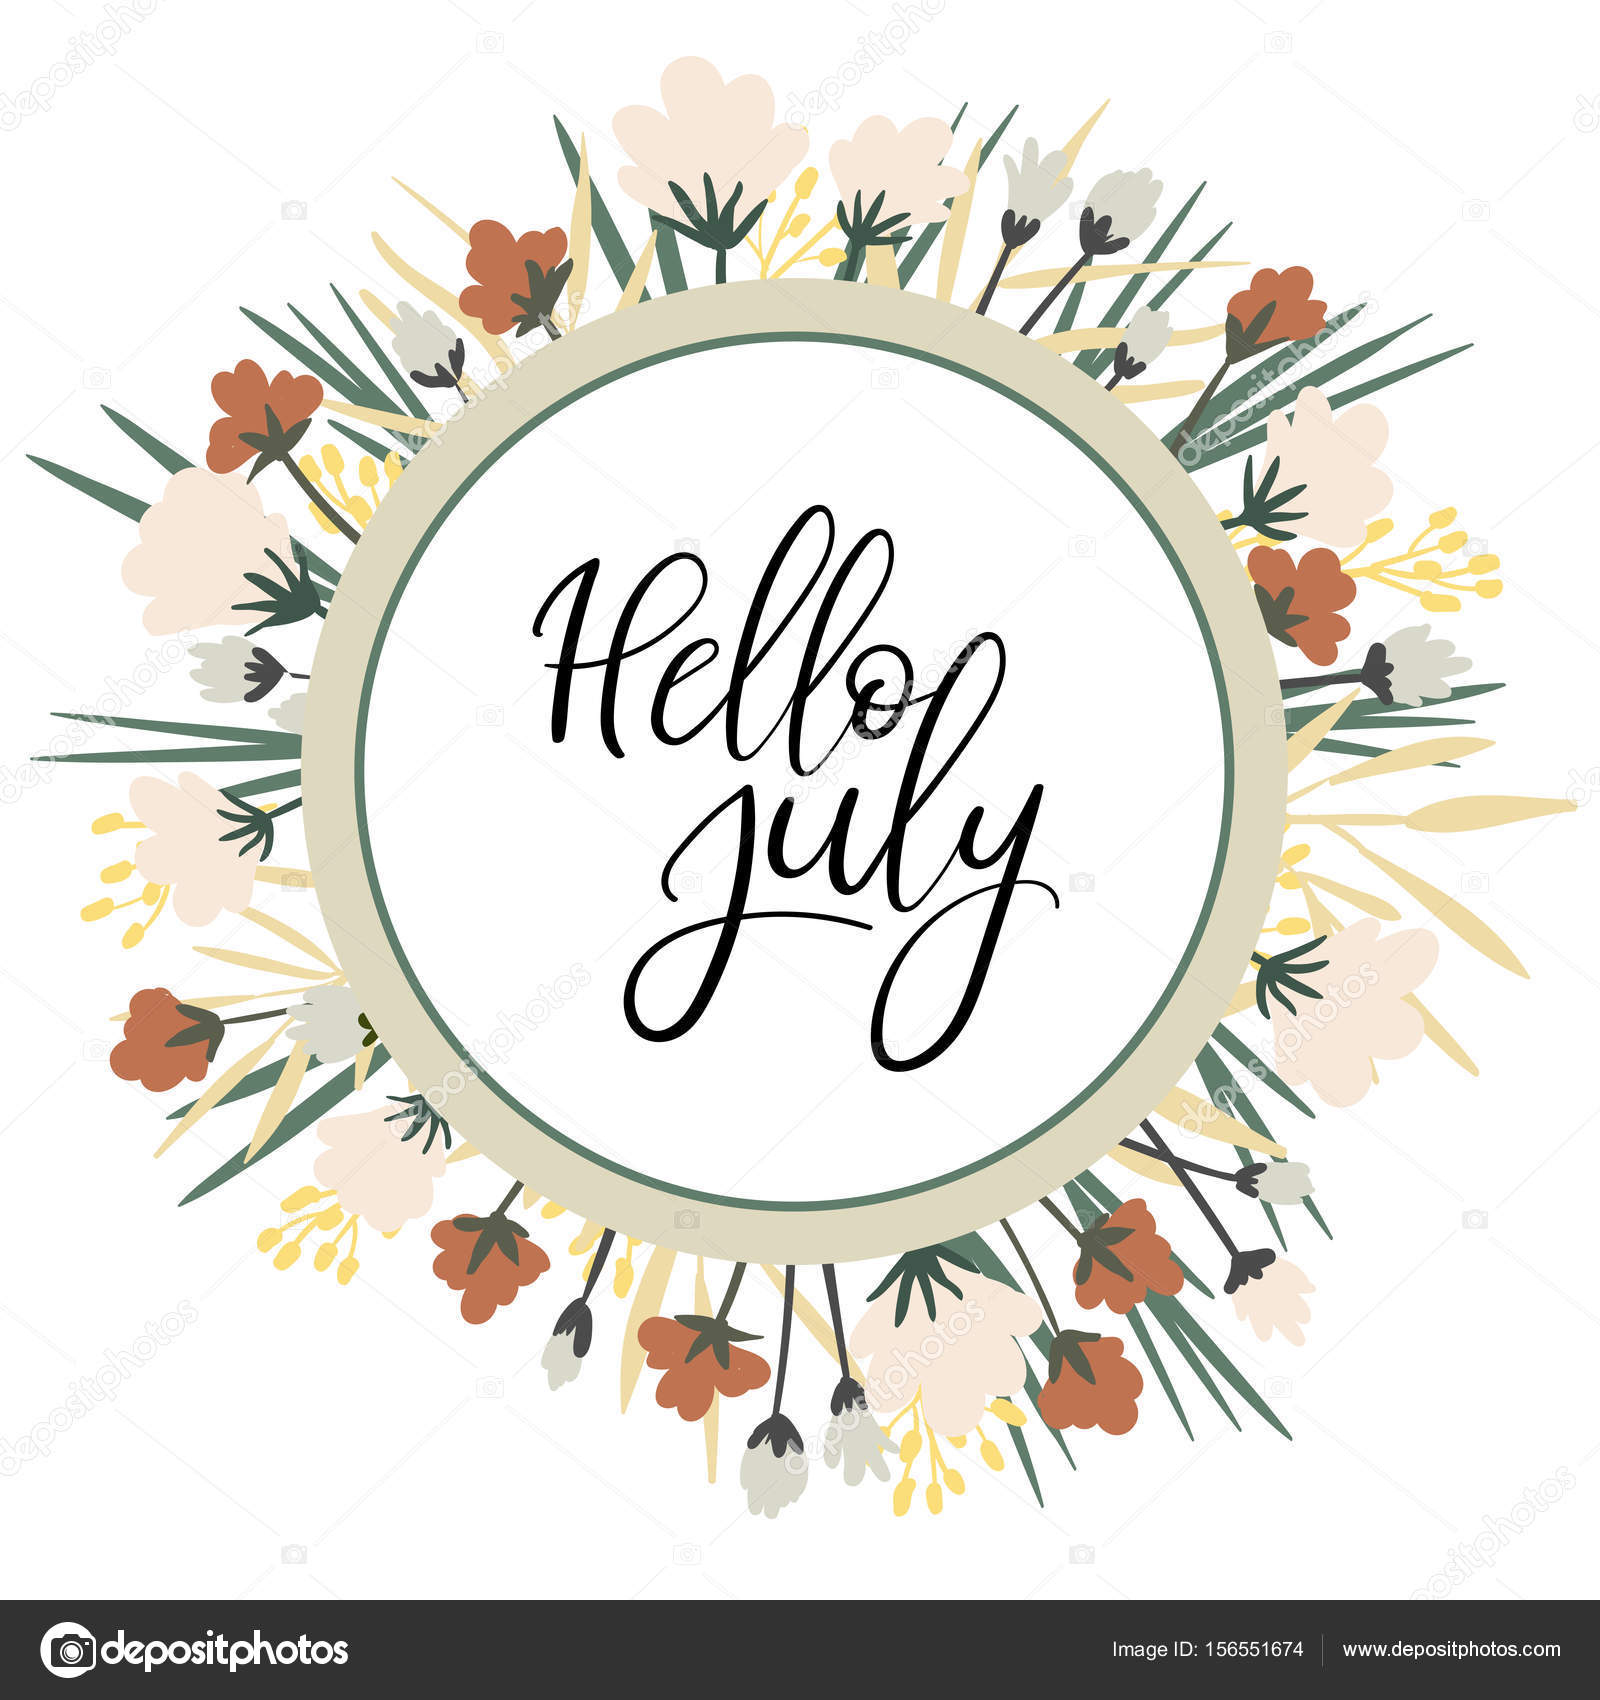 Hello July Calligraphy Inscription. Summer Greeting Card, Postcard, Card,  Invitation, Banner Template With Floral Frame. Brush Calligraphy.